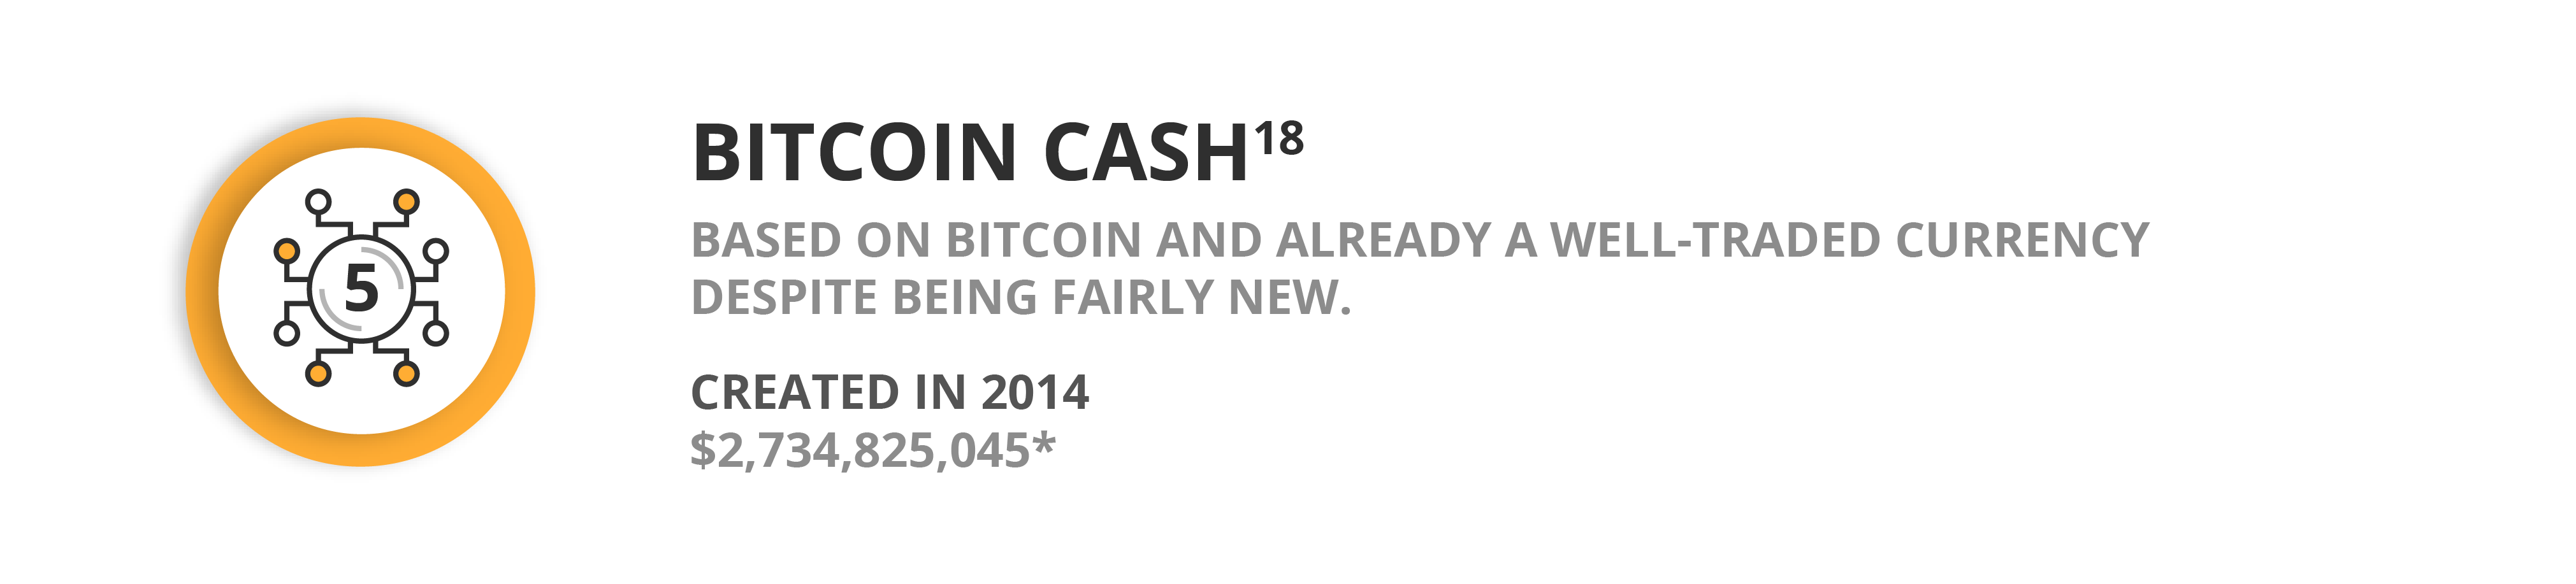 Bitcoin Cash - A well-traded cryptocurrency despite being fairly new